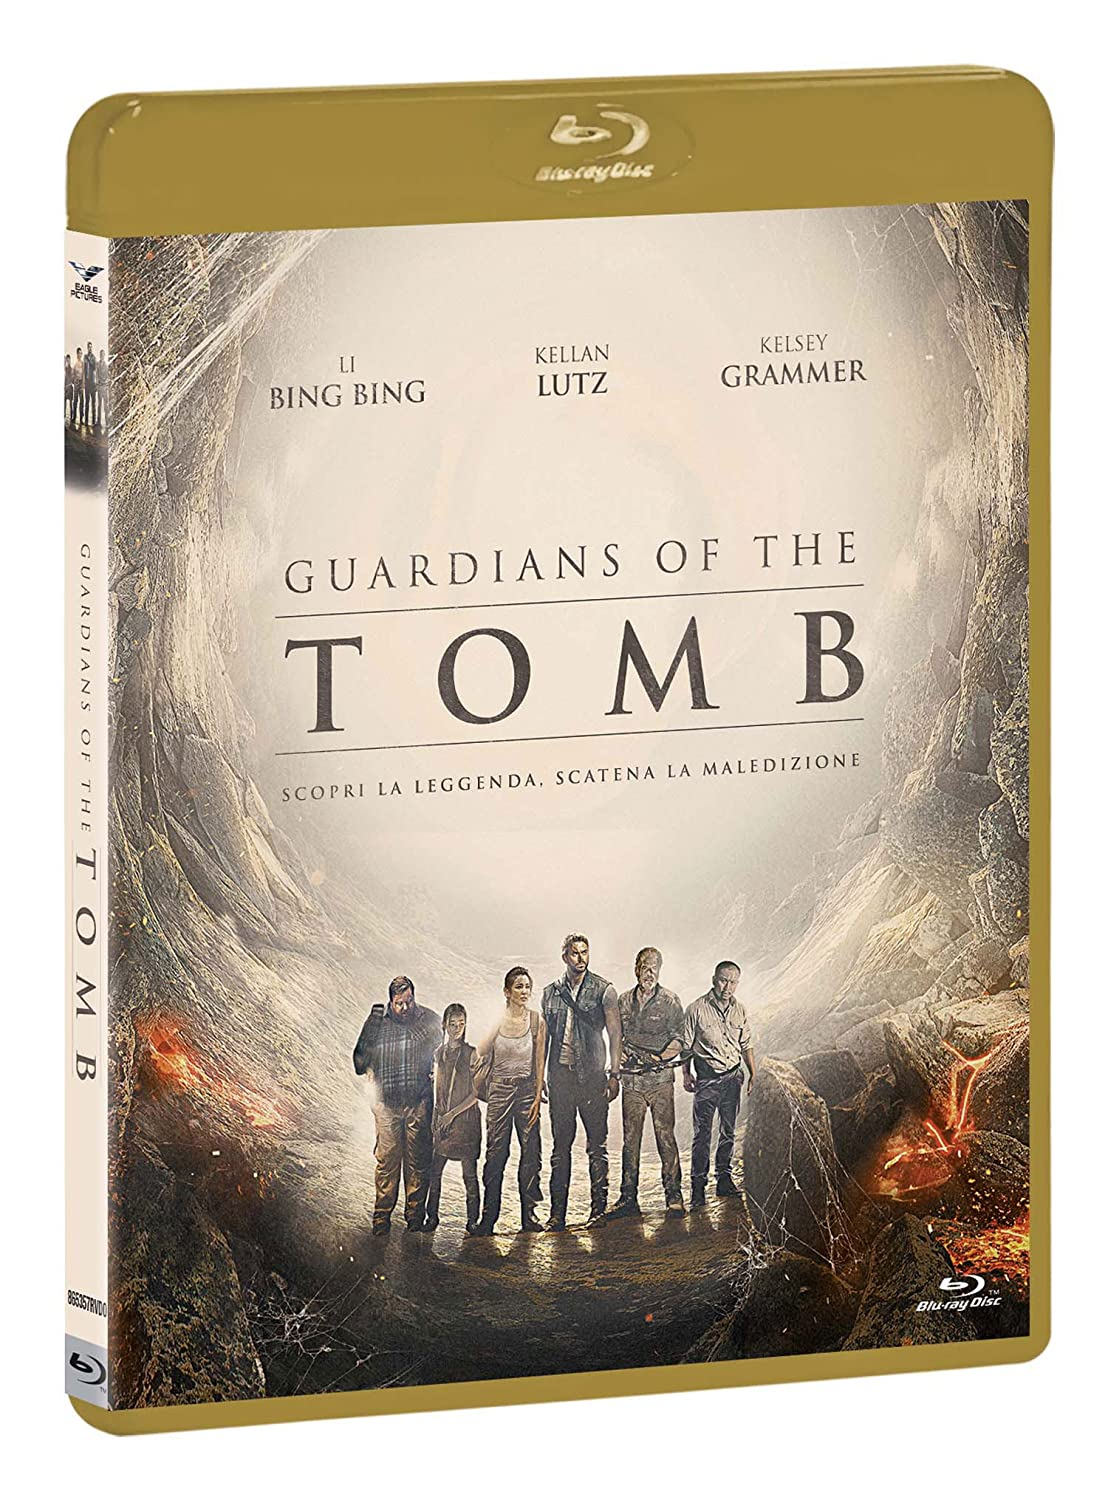 GUARDIANS OF THE TOMB - BLU RAY